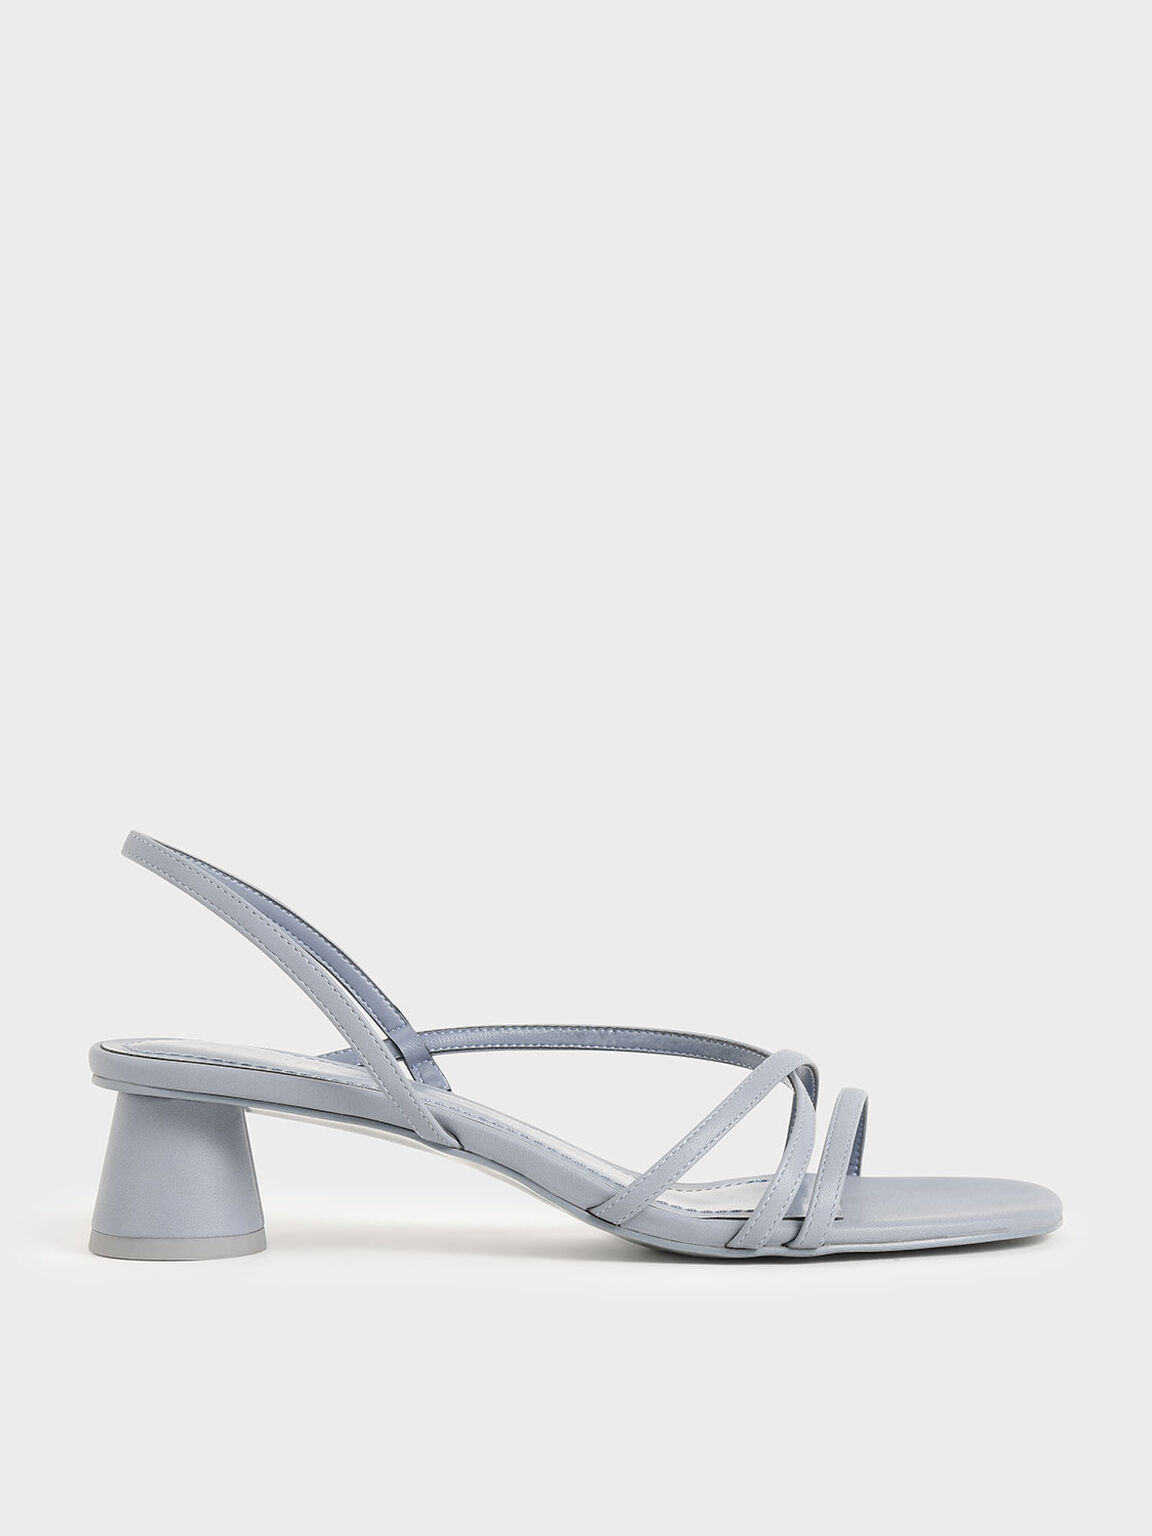 Strappy Cylindrical Heel Sandals, Light Blue, hi-res